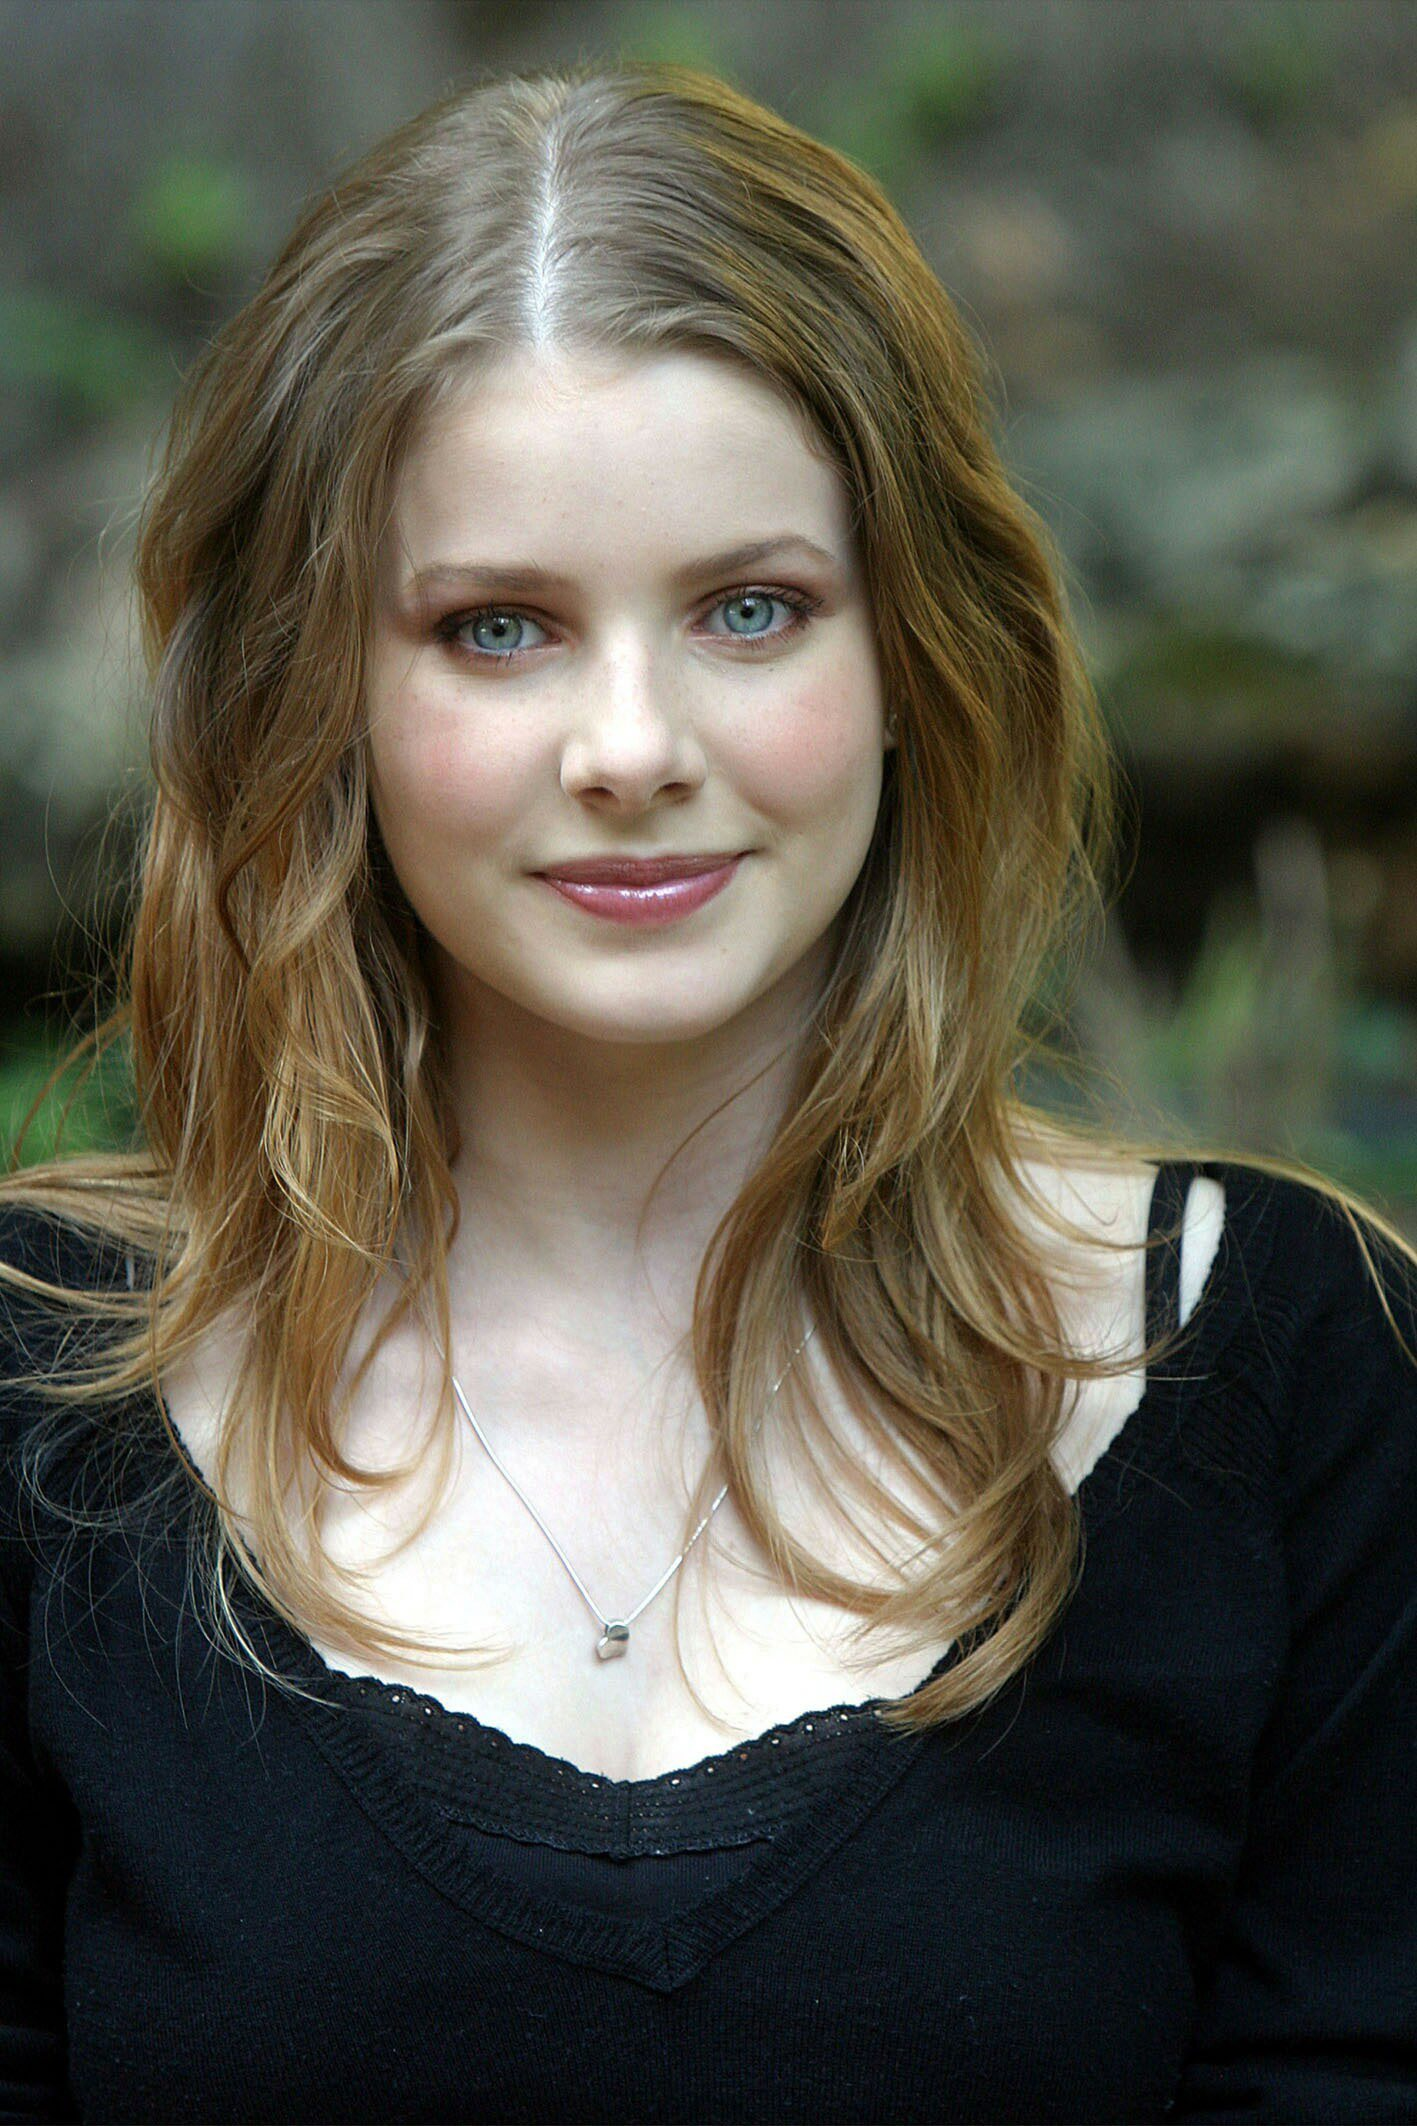 pics Rachel Hurd-Wood (born 1990)